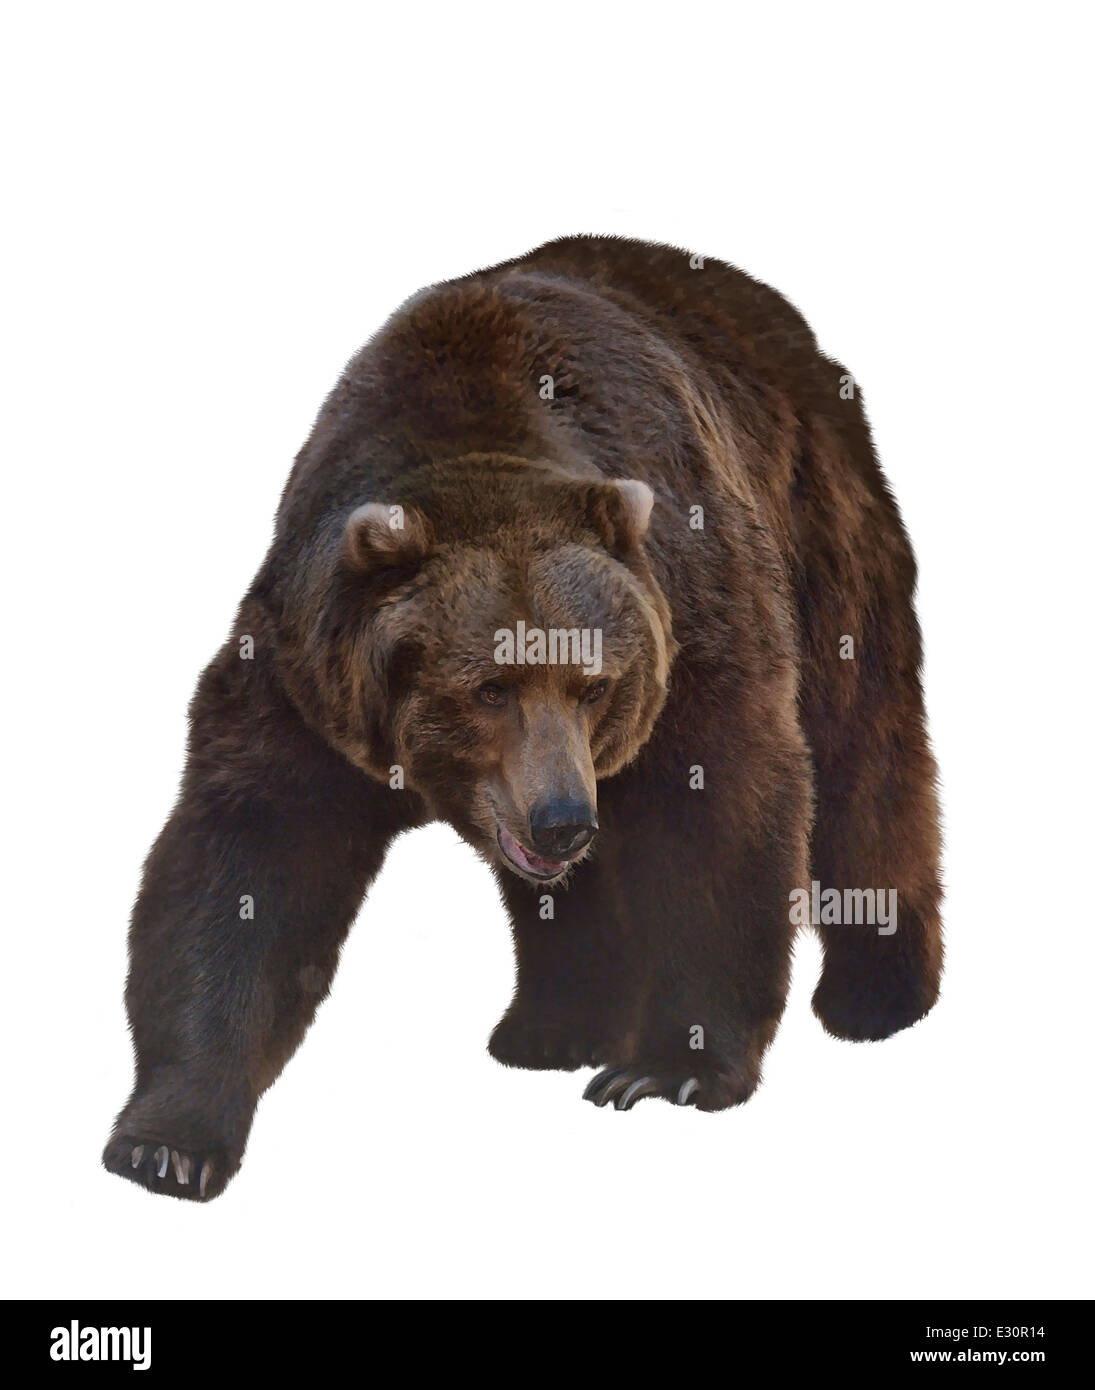 Watercolor Digital Painting Of Grizzly Bear Isolated On White Background - Stock Image